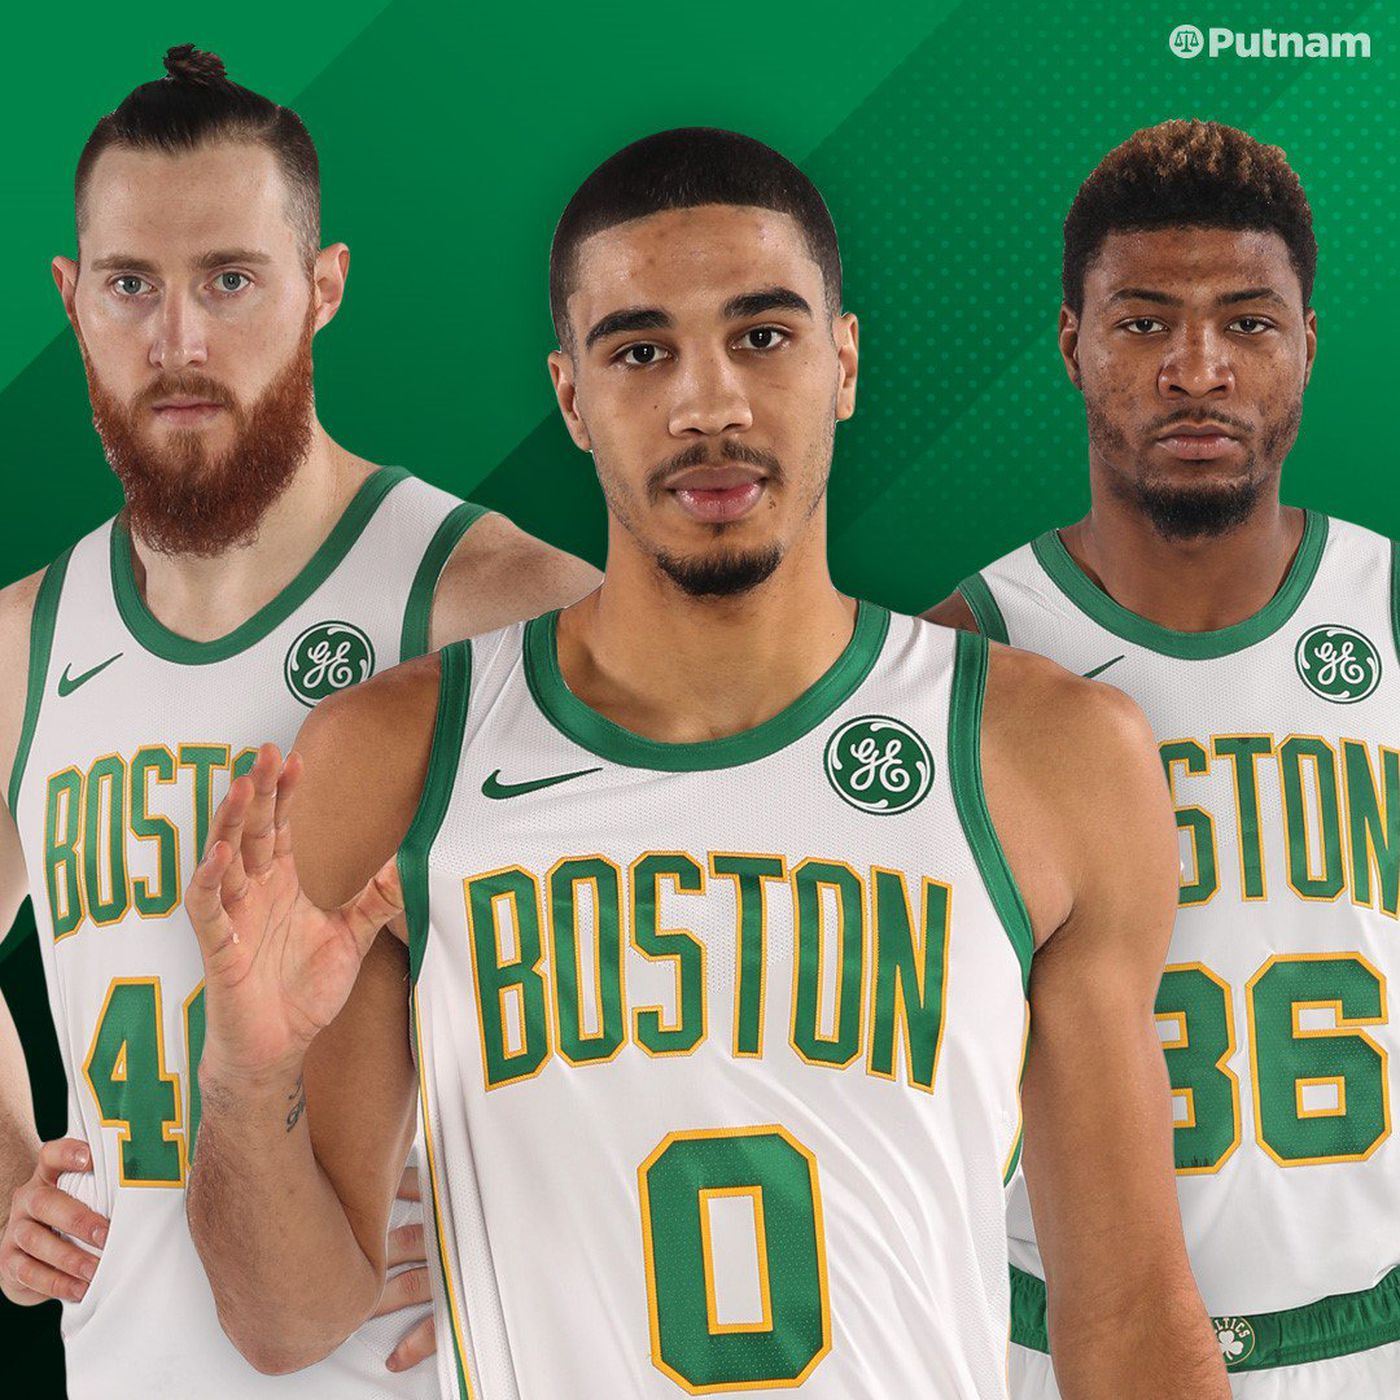 2b4568c1a Celtics to debut City Edition jerseys tonight against the Knicks -  CelticsBlog